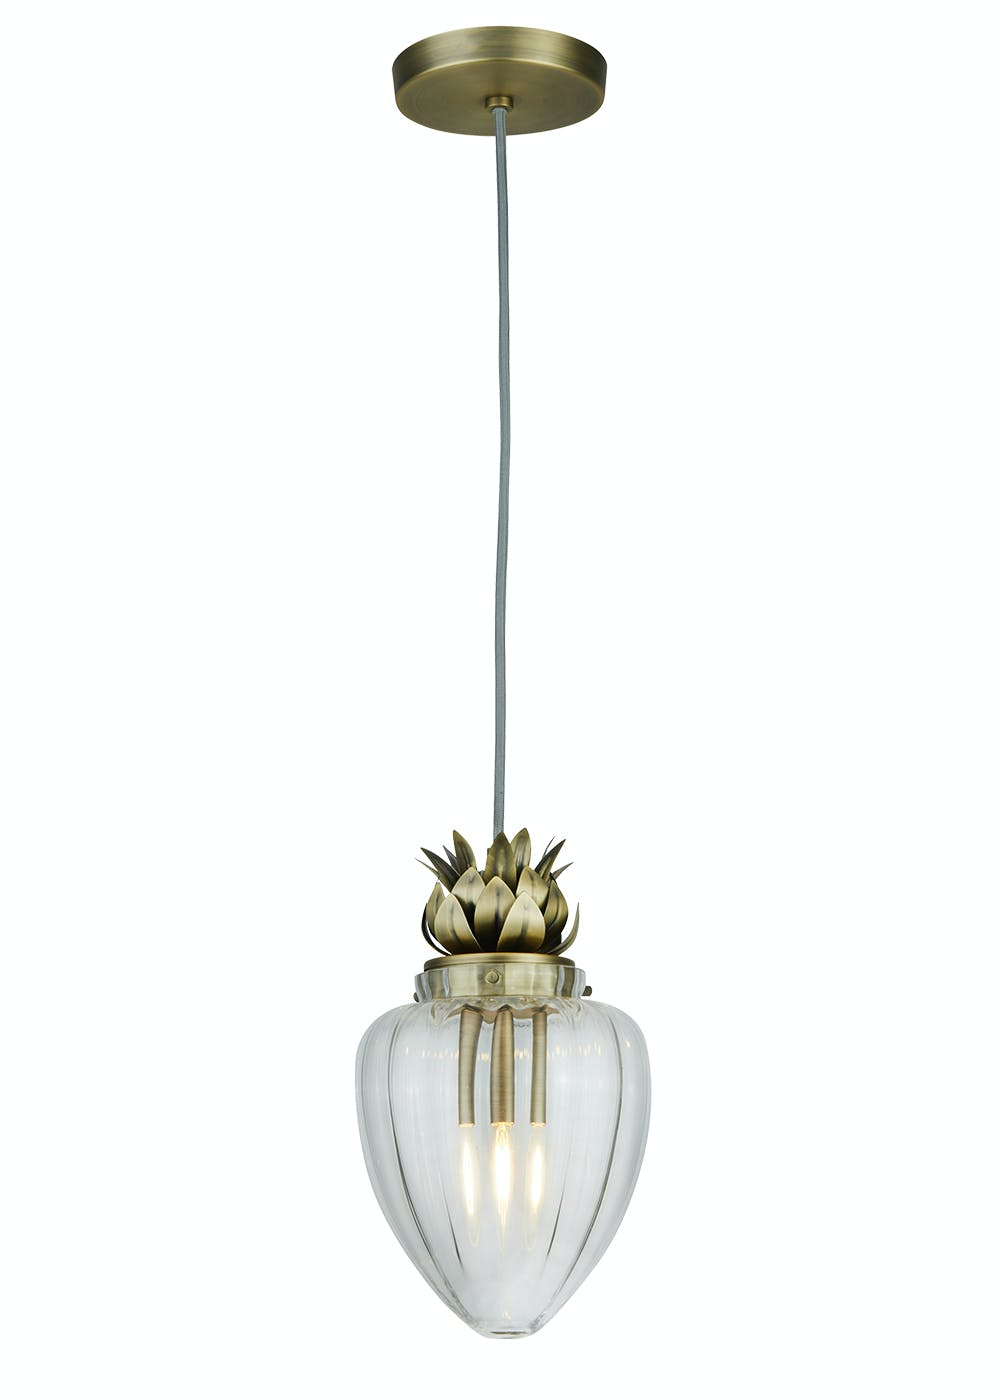 Pineapple glass pendant light h130cm x w16cm